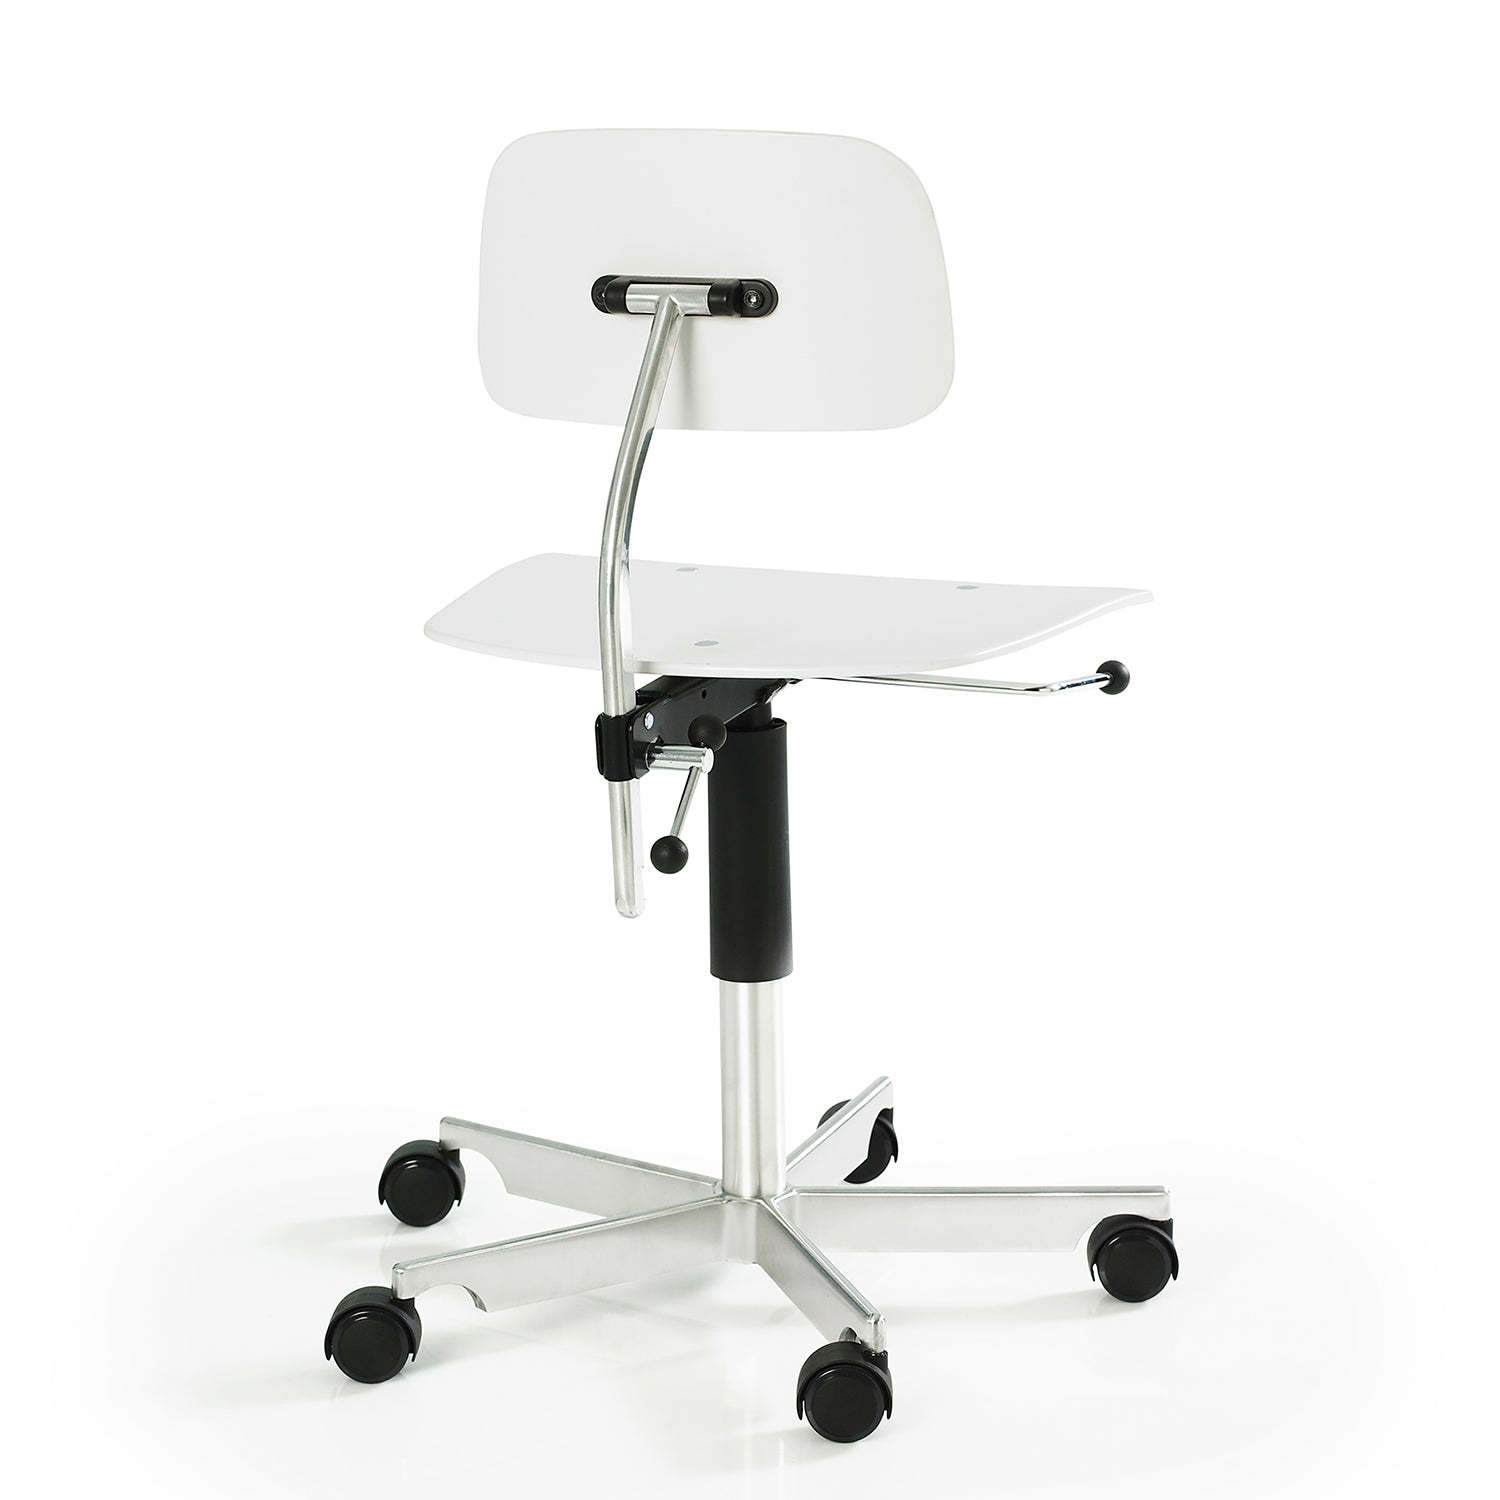 Kevi Chair 2533: Wood + White Lacquer